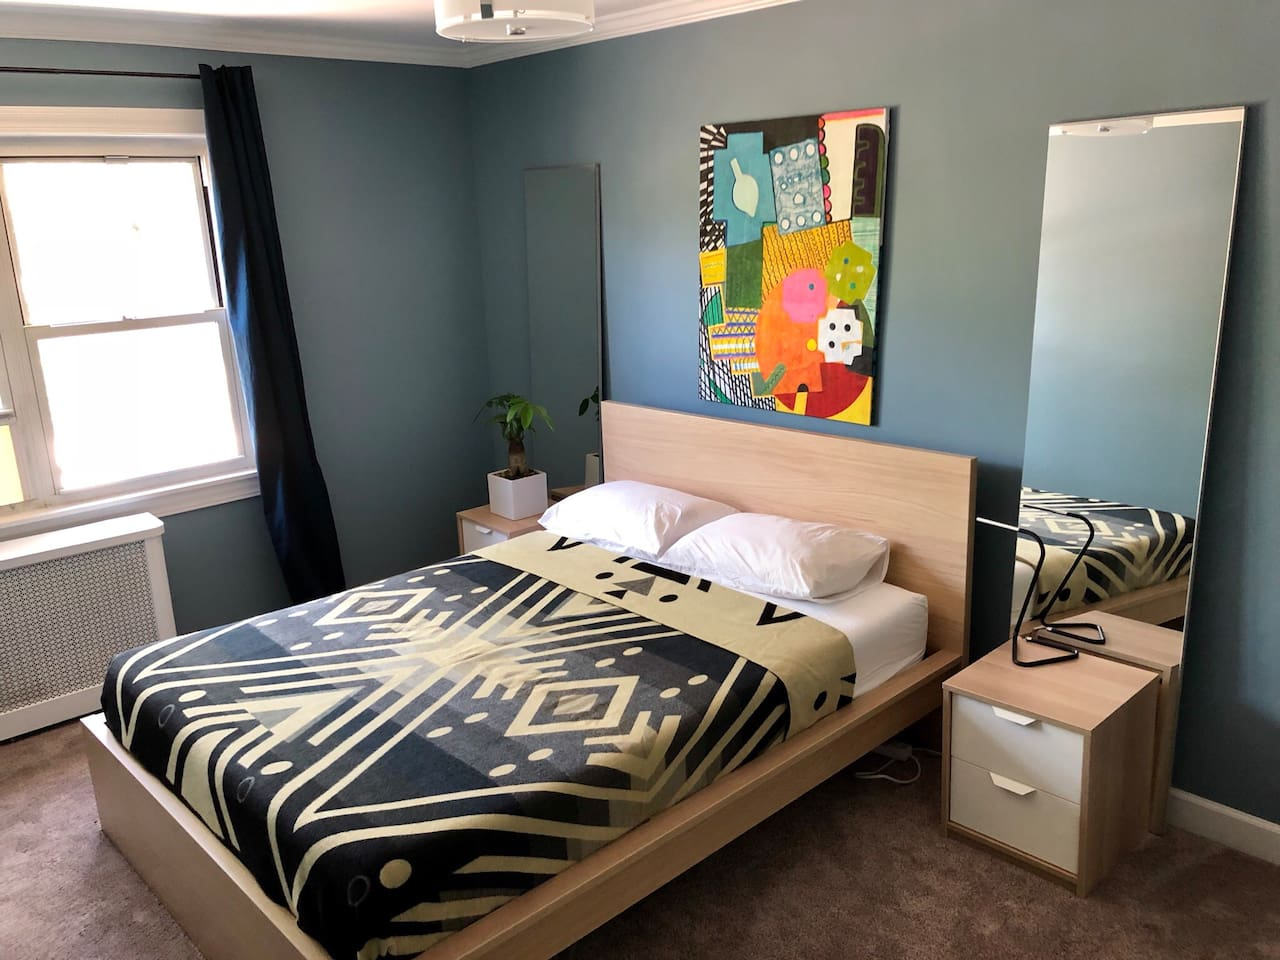 Have a restful stay in this spacious room with a queens size bed!